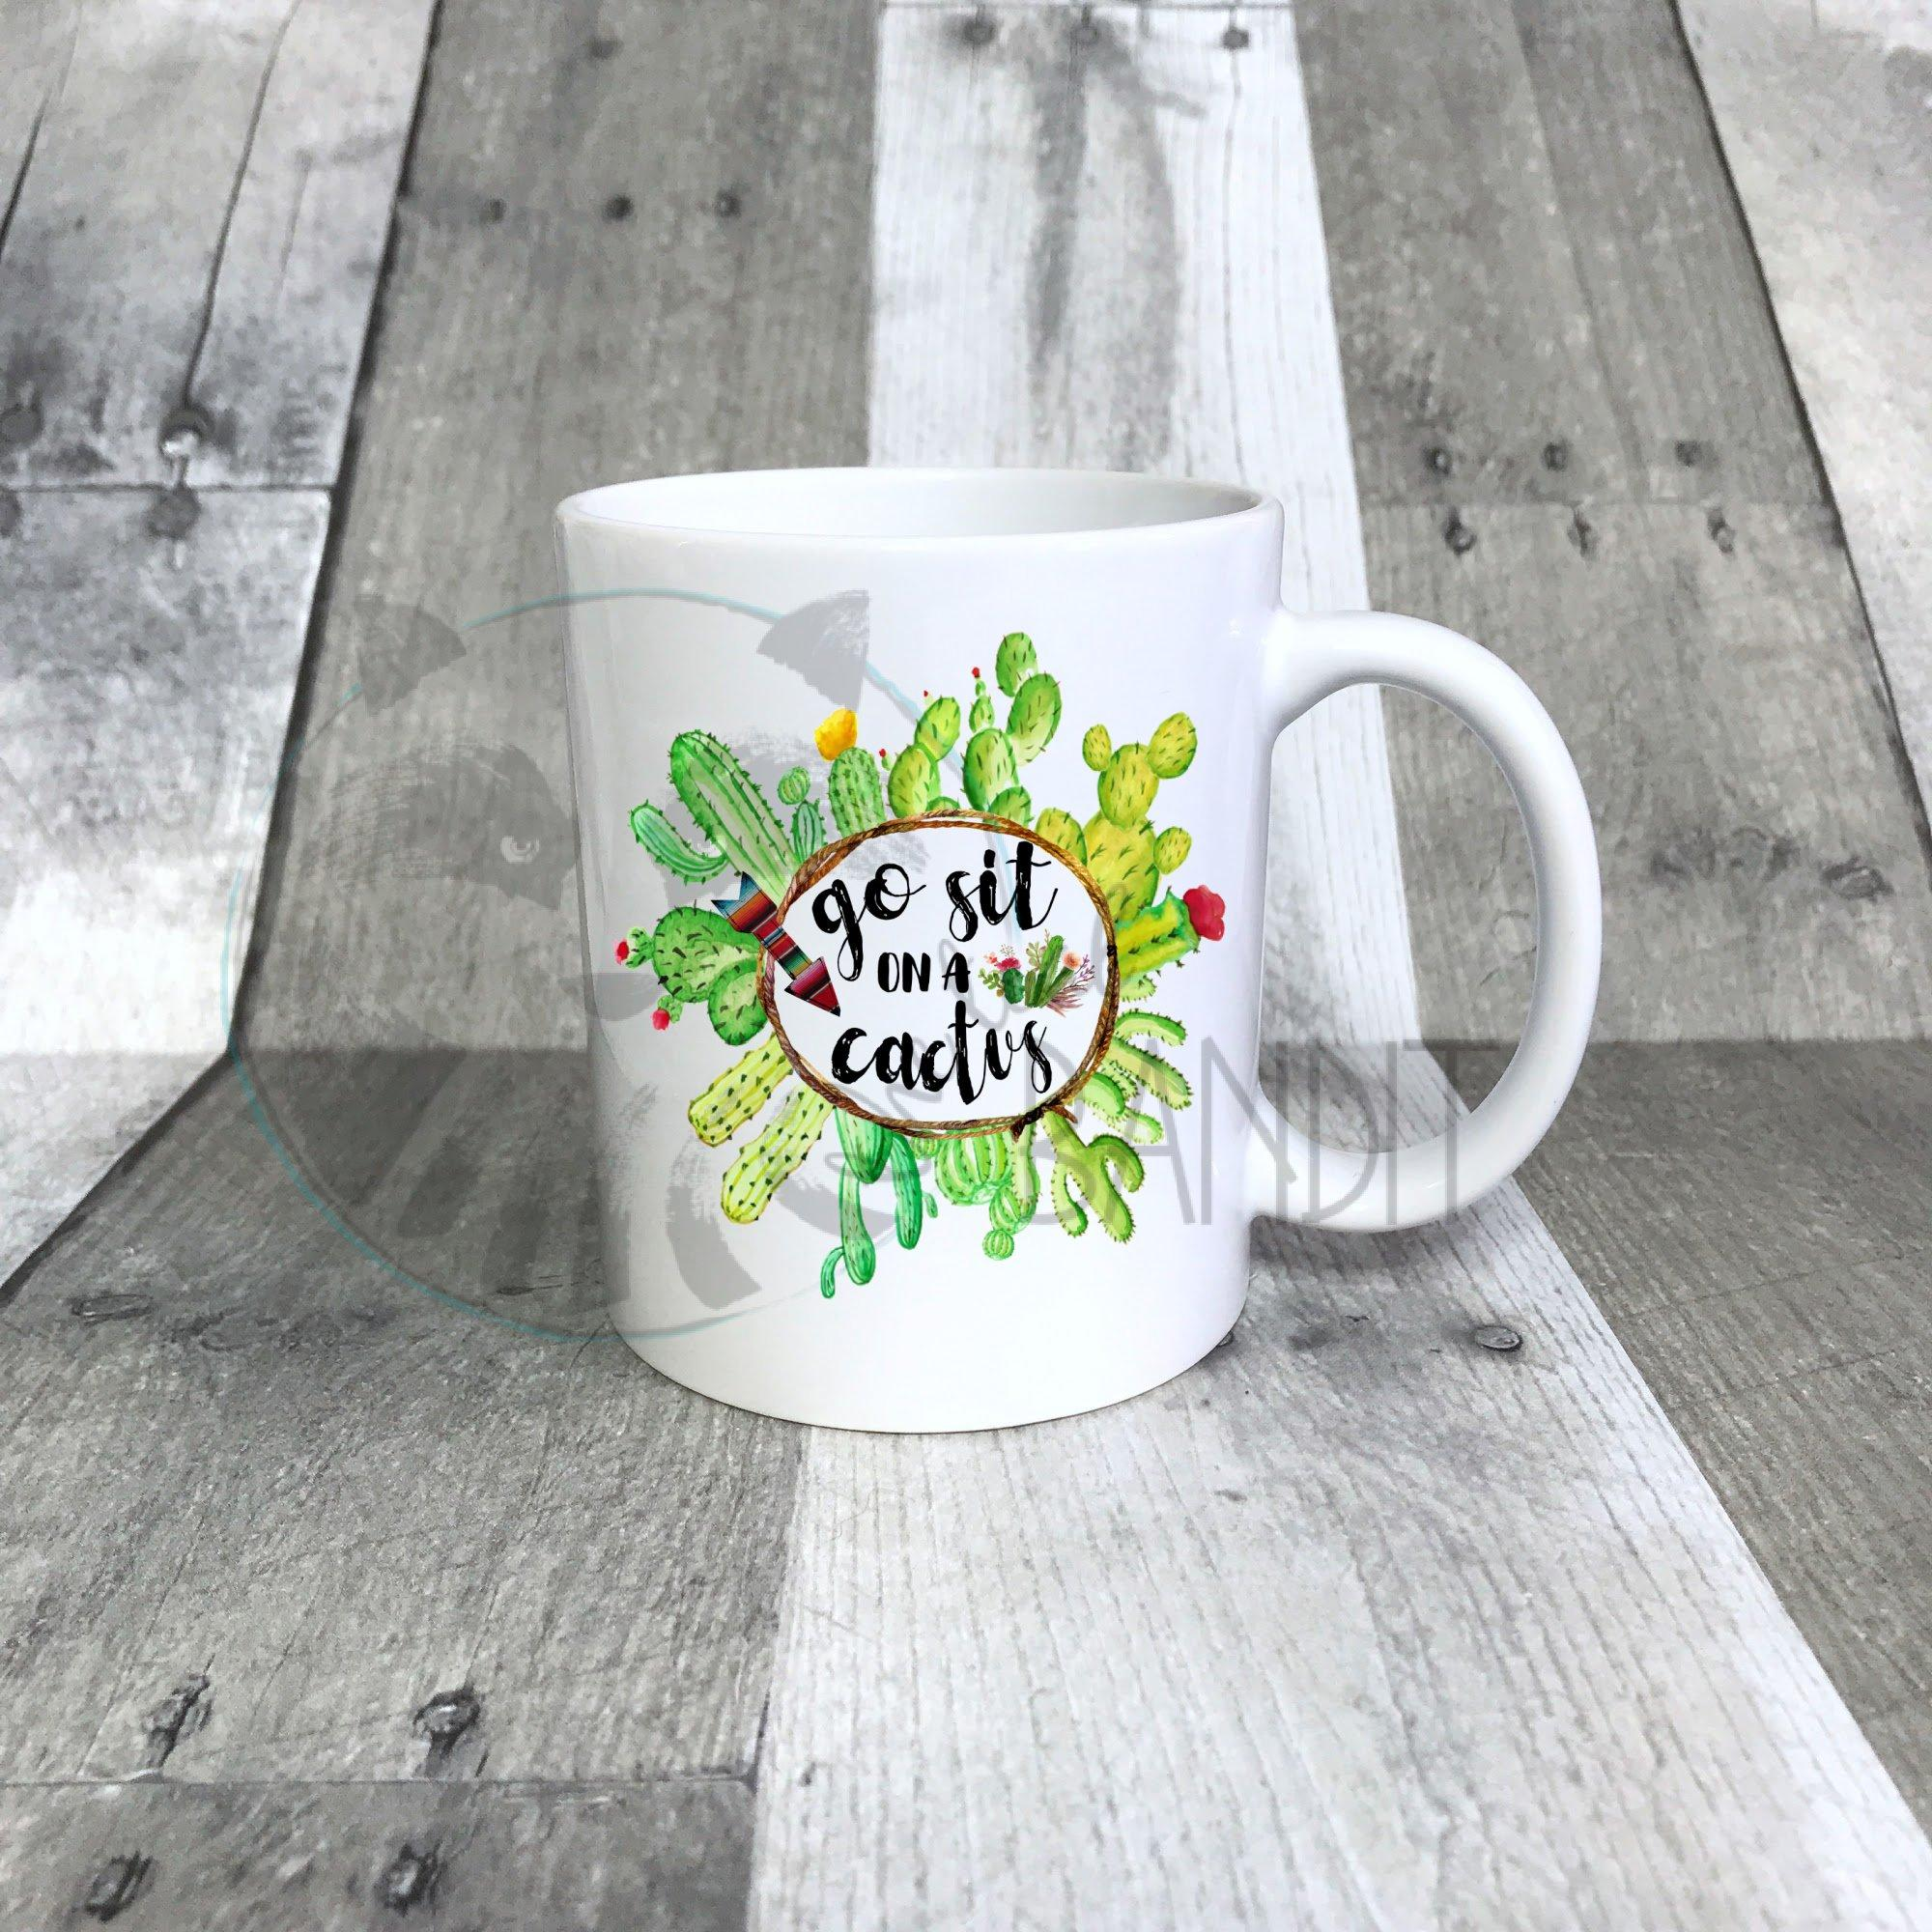 Sit on a Cactus mug mug The Teal Bandit